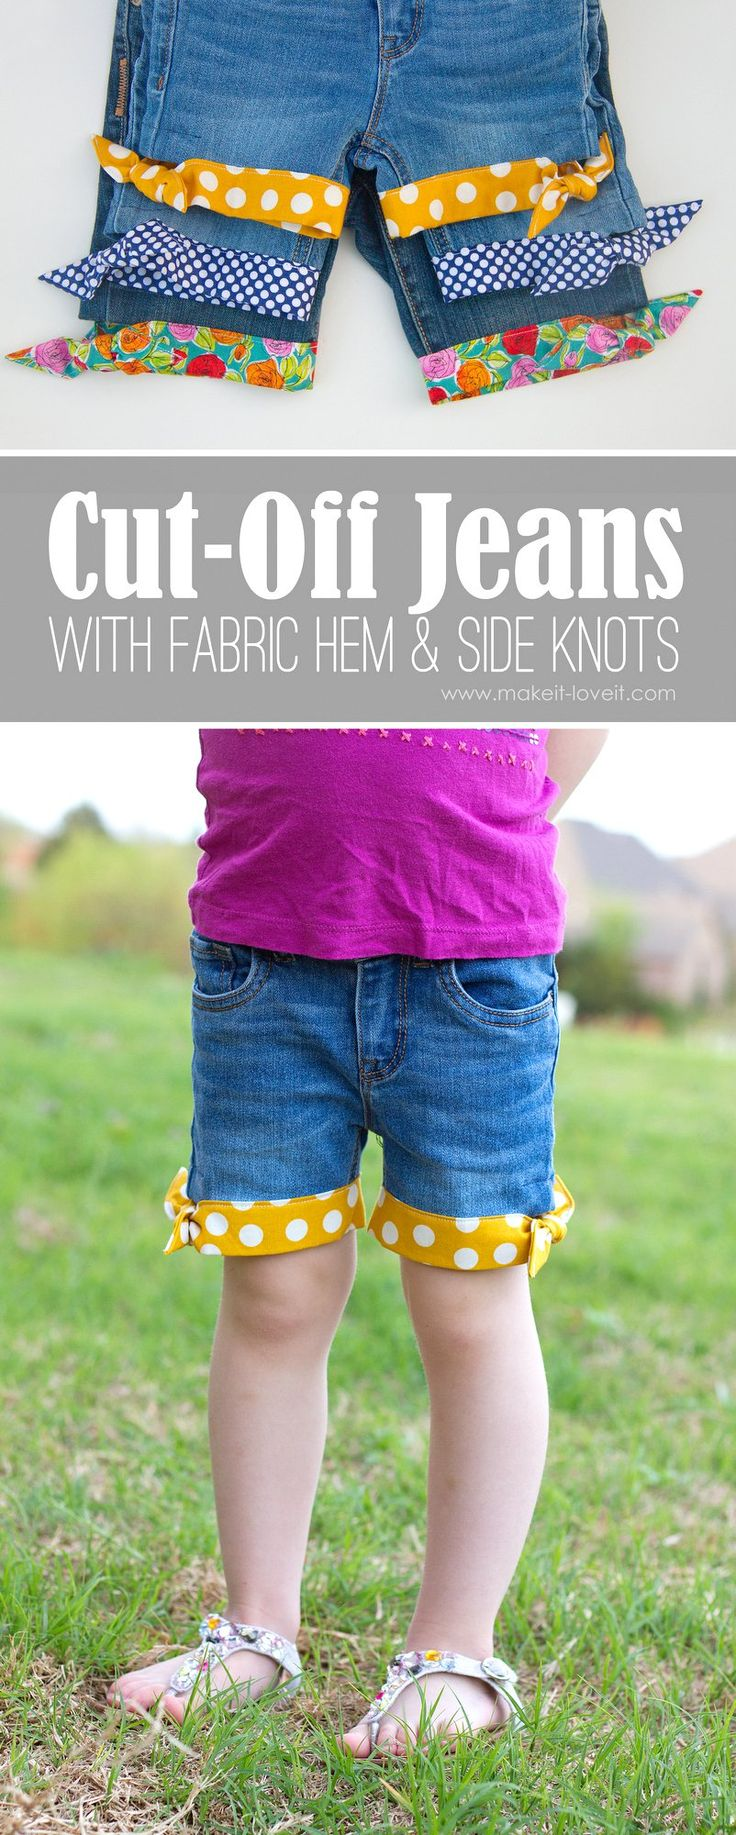 Cut-Off Jeans...with Fabric Hem and Side Knots. Don't throw away those old jeans, turn them into really cute cut-offs for girls of all ages!